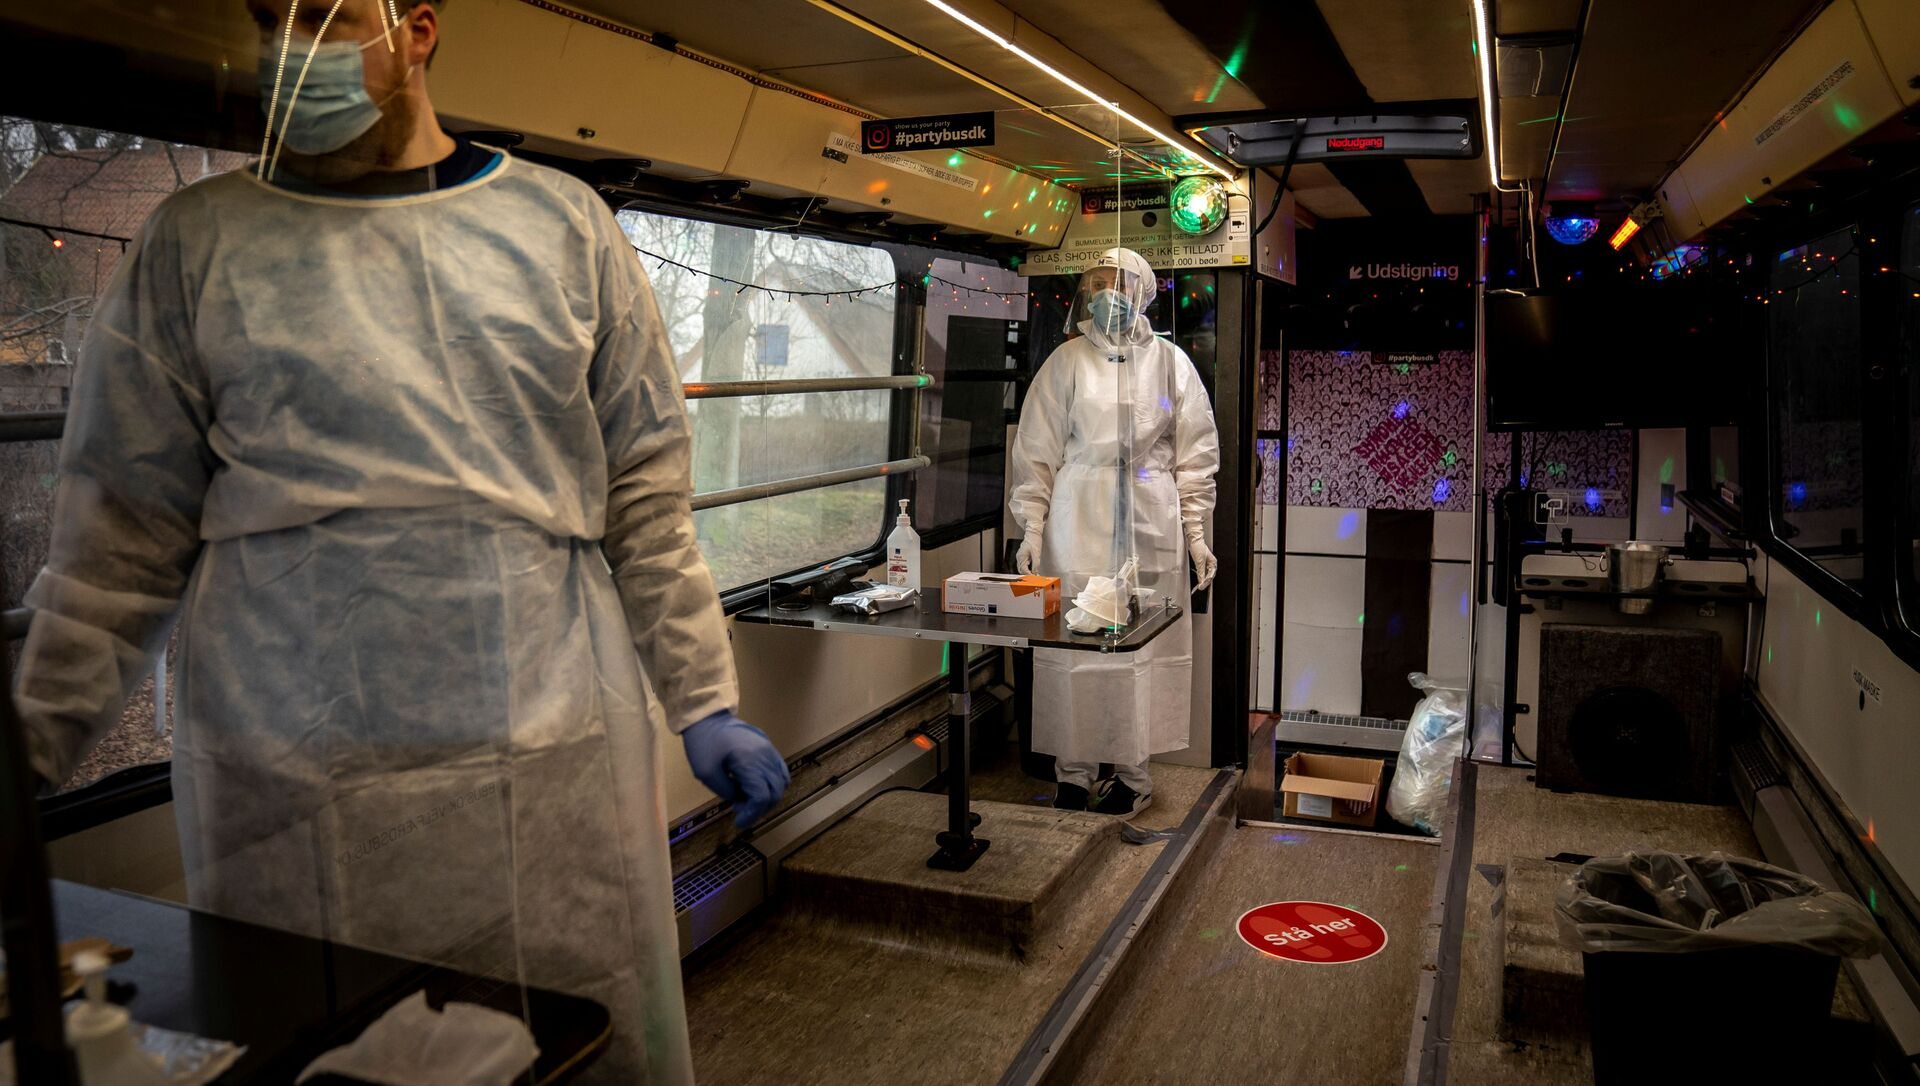 Healthcare workers wait in the Partybus, where people can listen to music while being tested for the coronavirus disease (COVID-19), in Ishoej, Denmark February 23, 2021 - Sputnik International, 1920, 21.05.2021